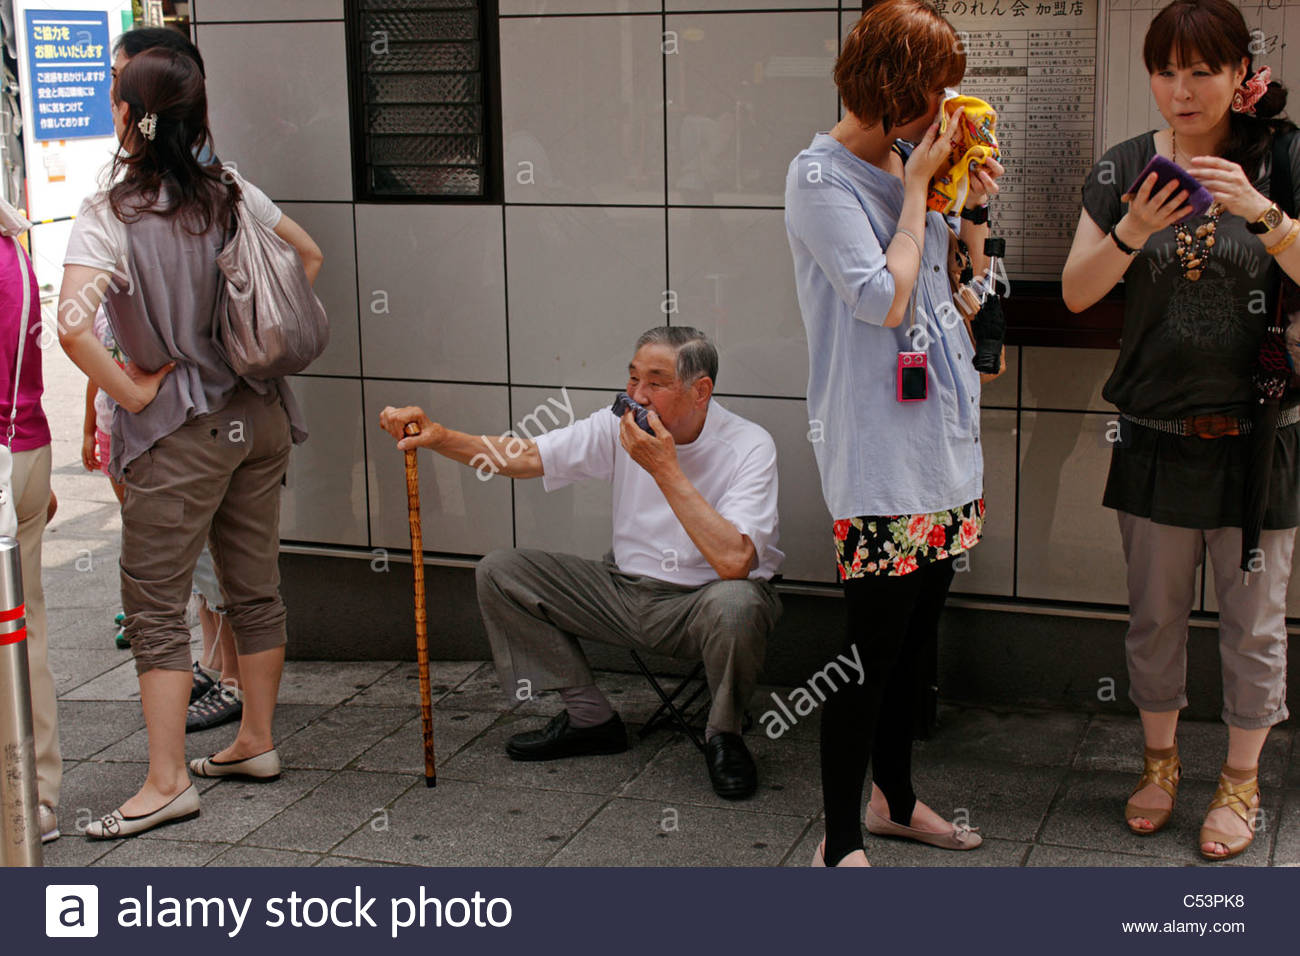 Hot summer day in Tokyo; an elderly man uses a portable stool to rest at the Sensoji temple, Asakusa, Tokyo, Japan - Stock Image